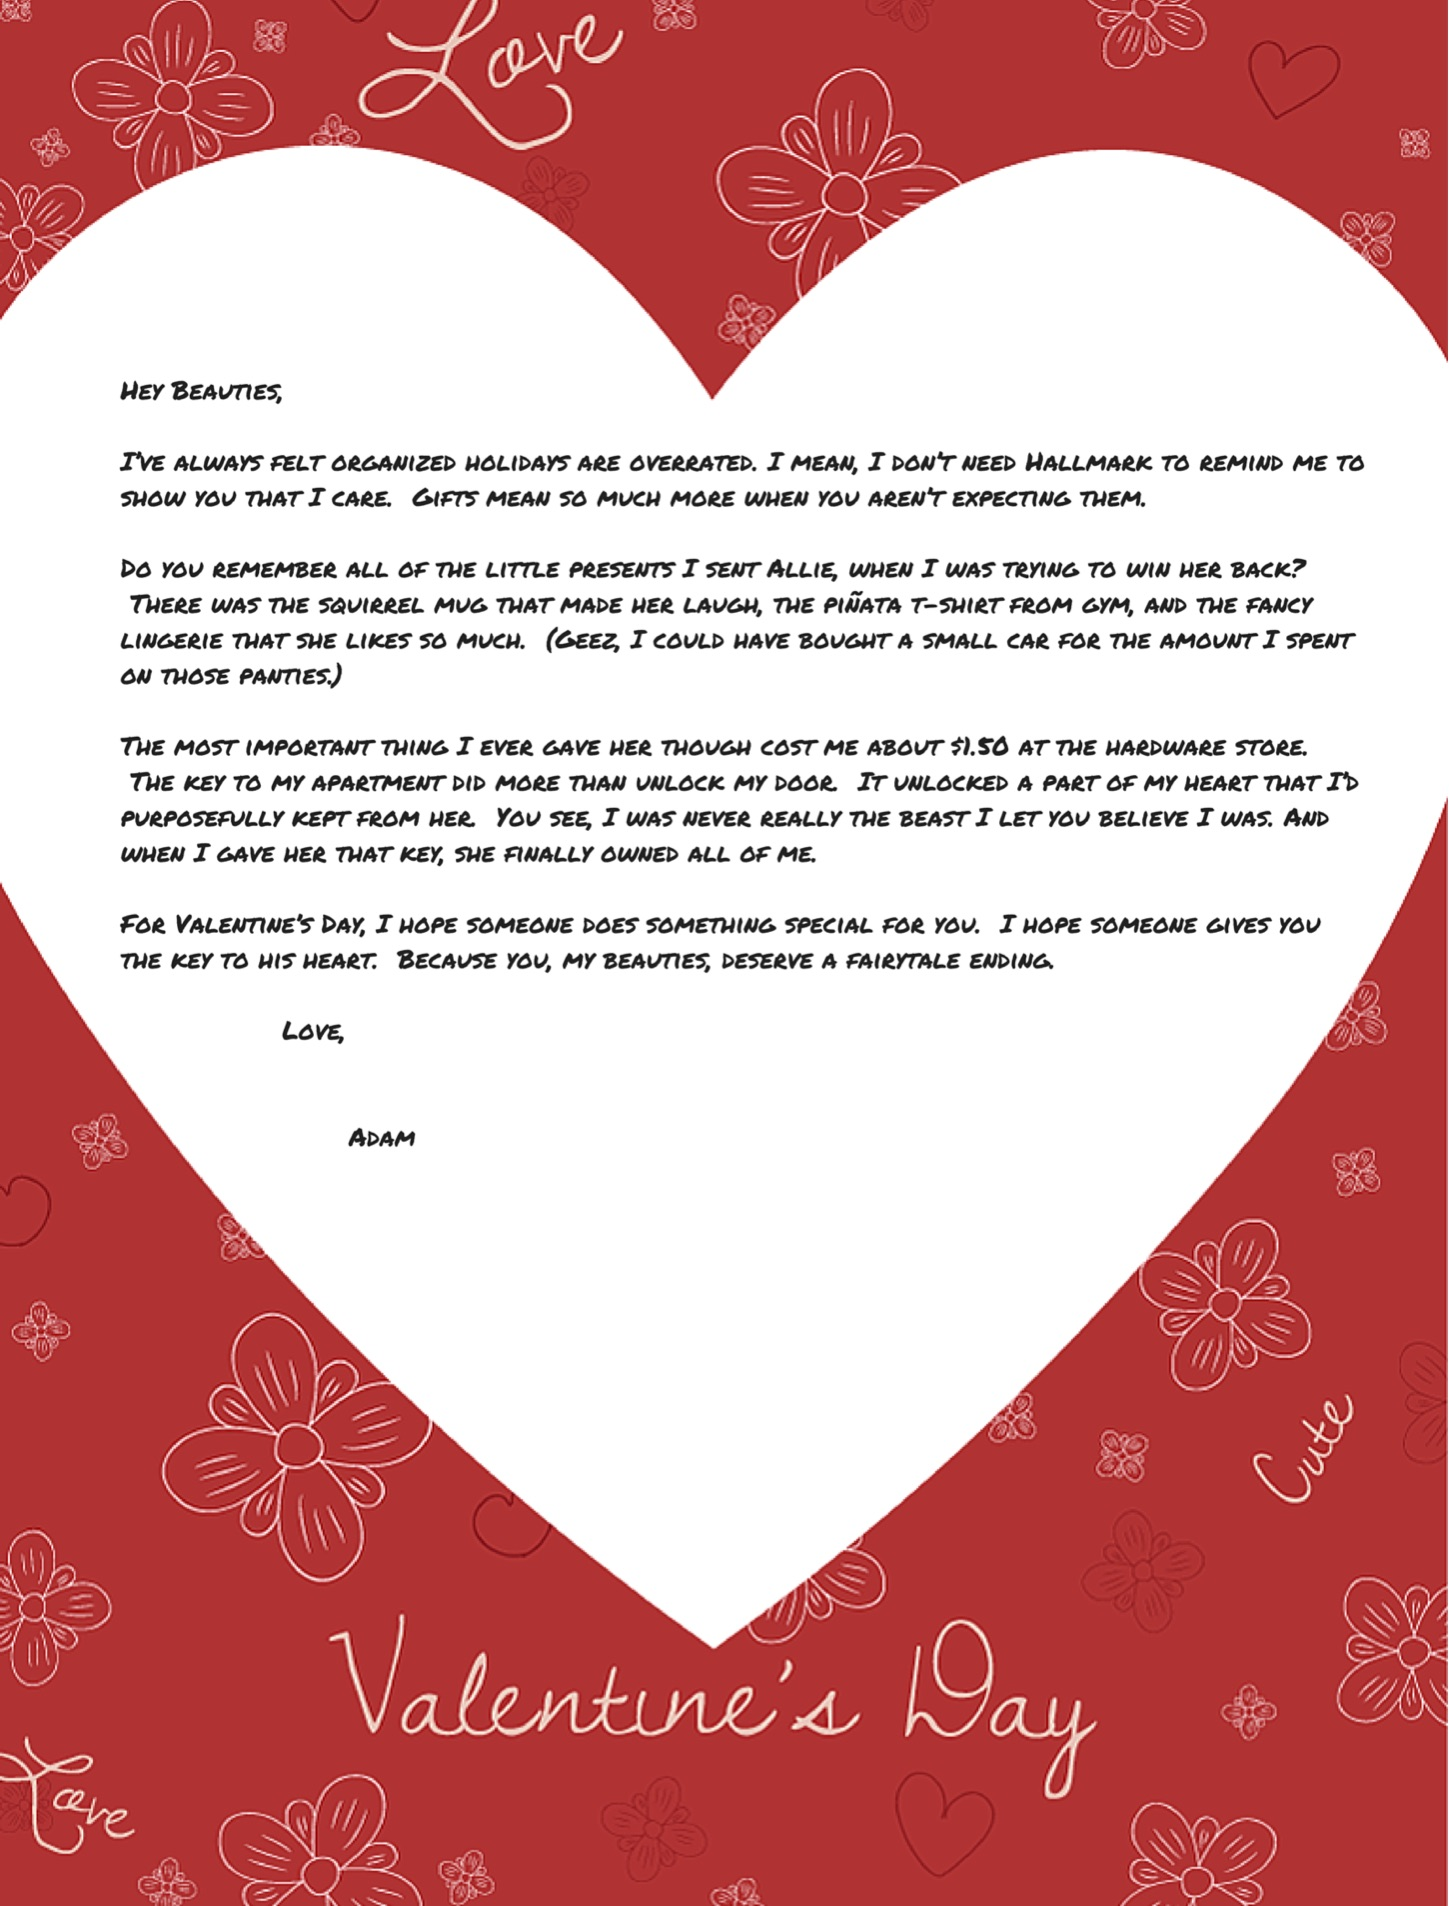 Valentines Day cards – Special Valentine Cards for Him